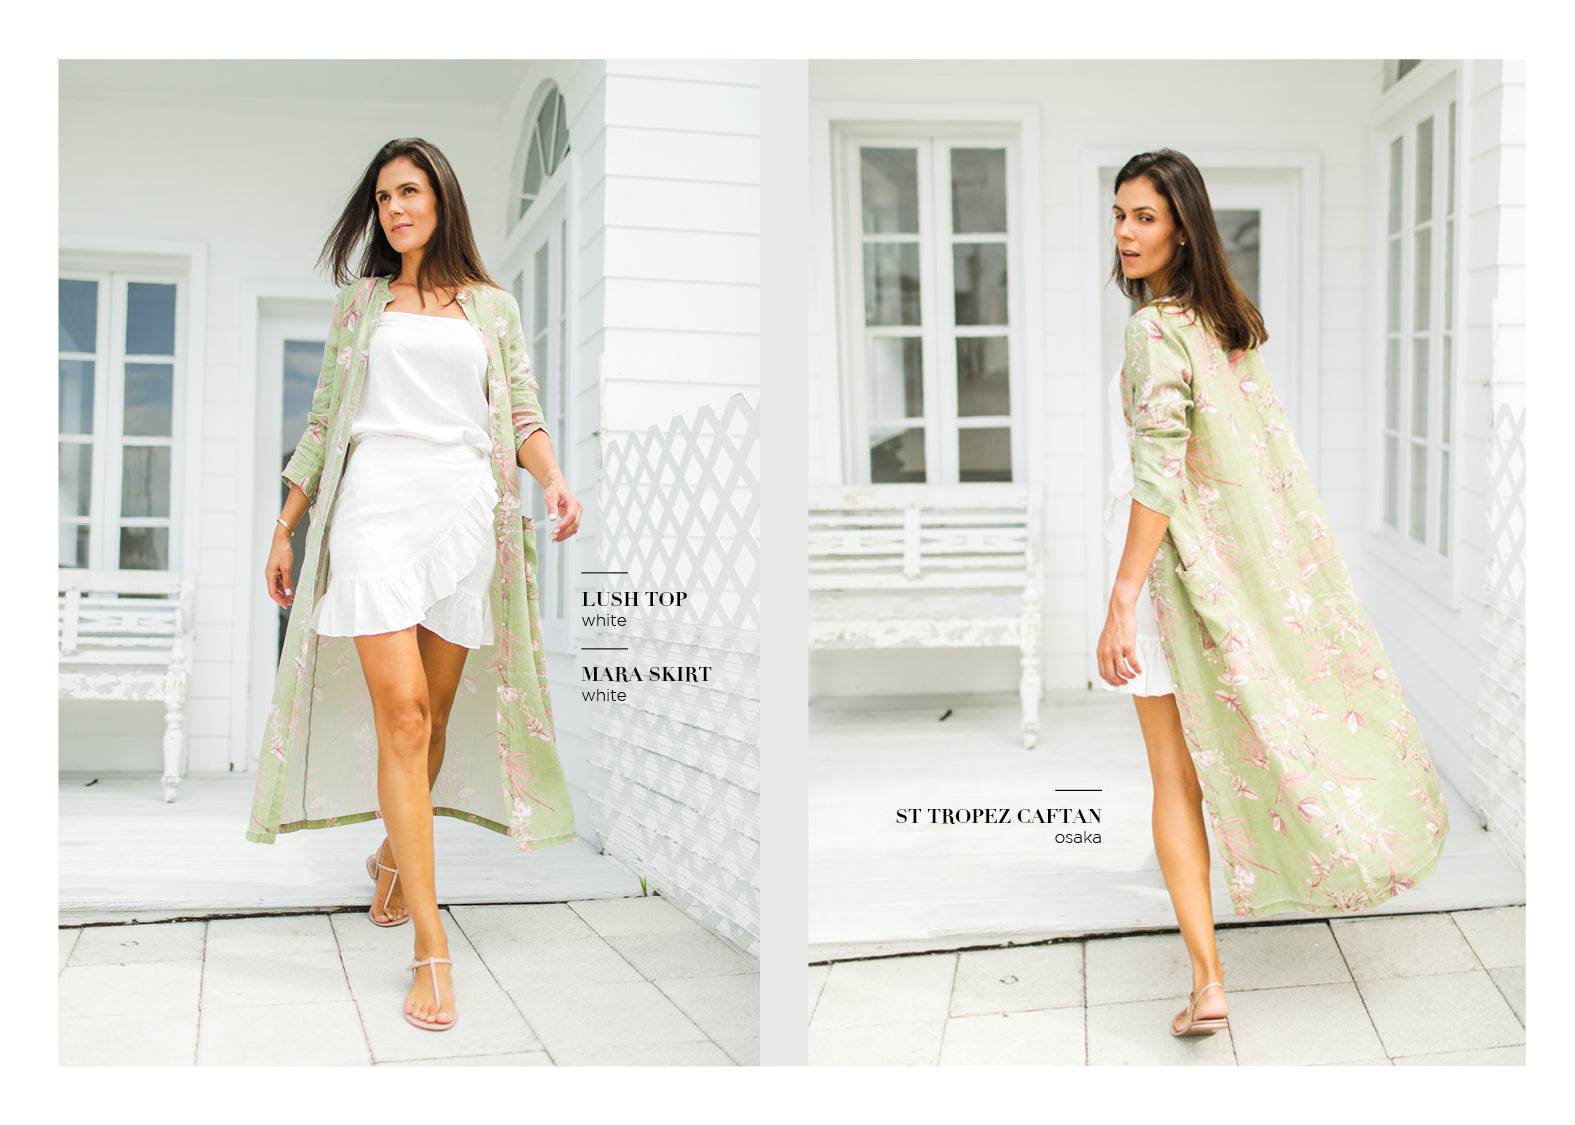 LANHTROPY 100% LINEN RESORT COLLECTION 2019